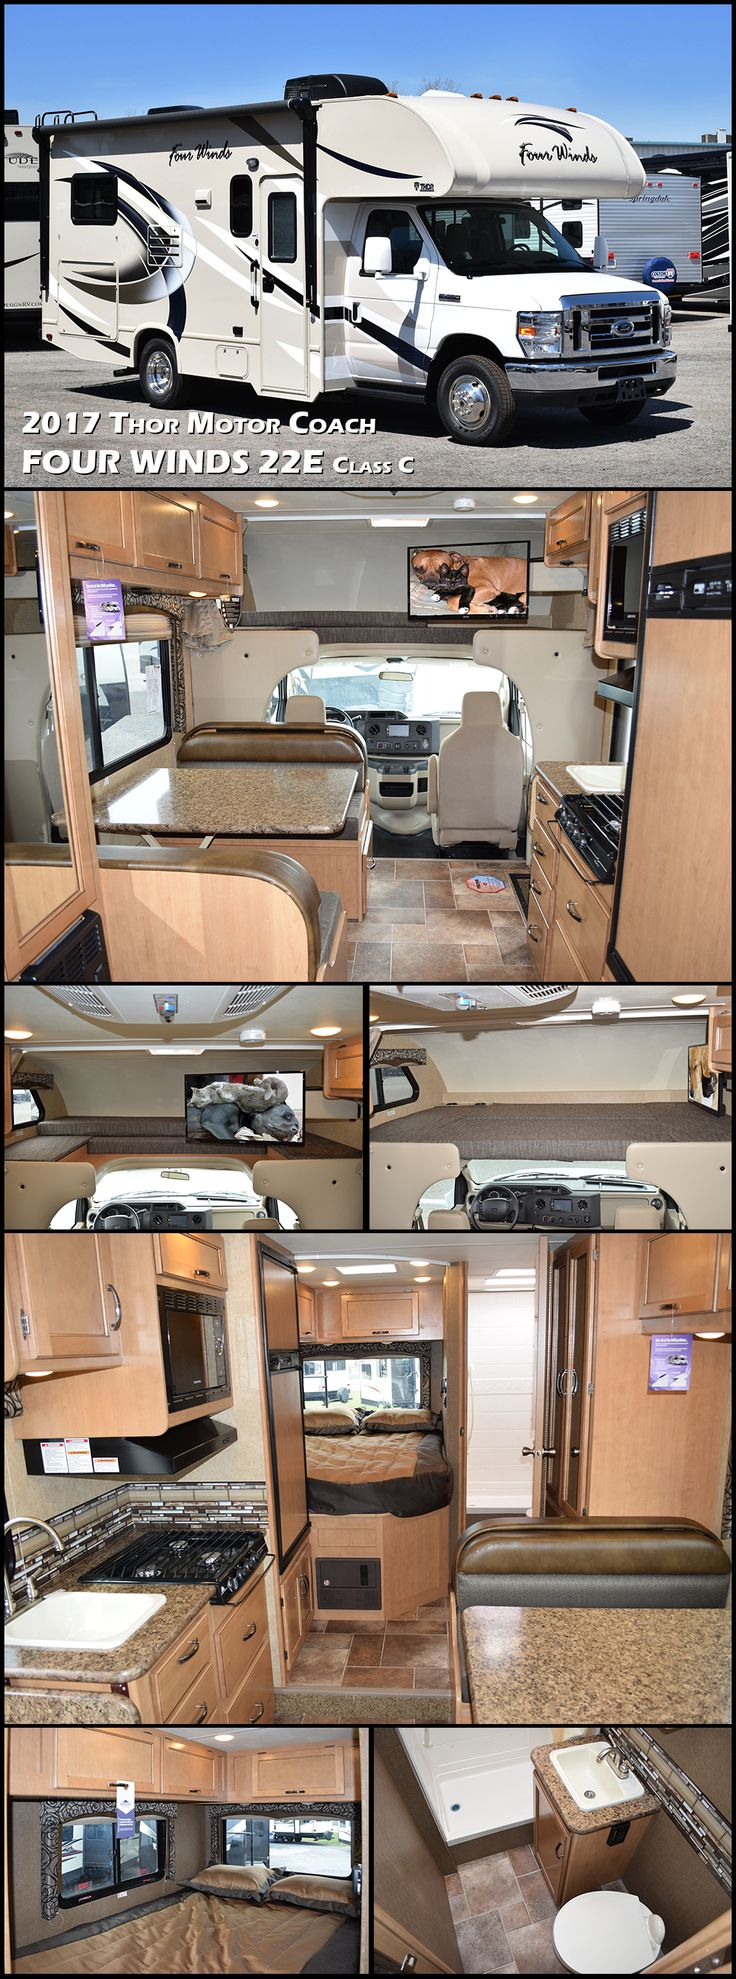 """Let the adventures begin in this Four Winds 22E class C motorhome by Thor Motor Coach providing you the freedom you need to see your dreams fulfilled! Up front there is a cab over bunk for more sleeping. You will also find a 24"""" TV with swivel base for viewing in multiple locations. A rear queen bed features overhead storage in front and along the curb side. The opposite rear corner features a complete bath with tub/shower, toilet, and vanity with sink, plus an overhead medicine cabinet."""